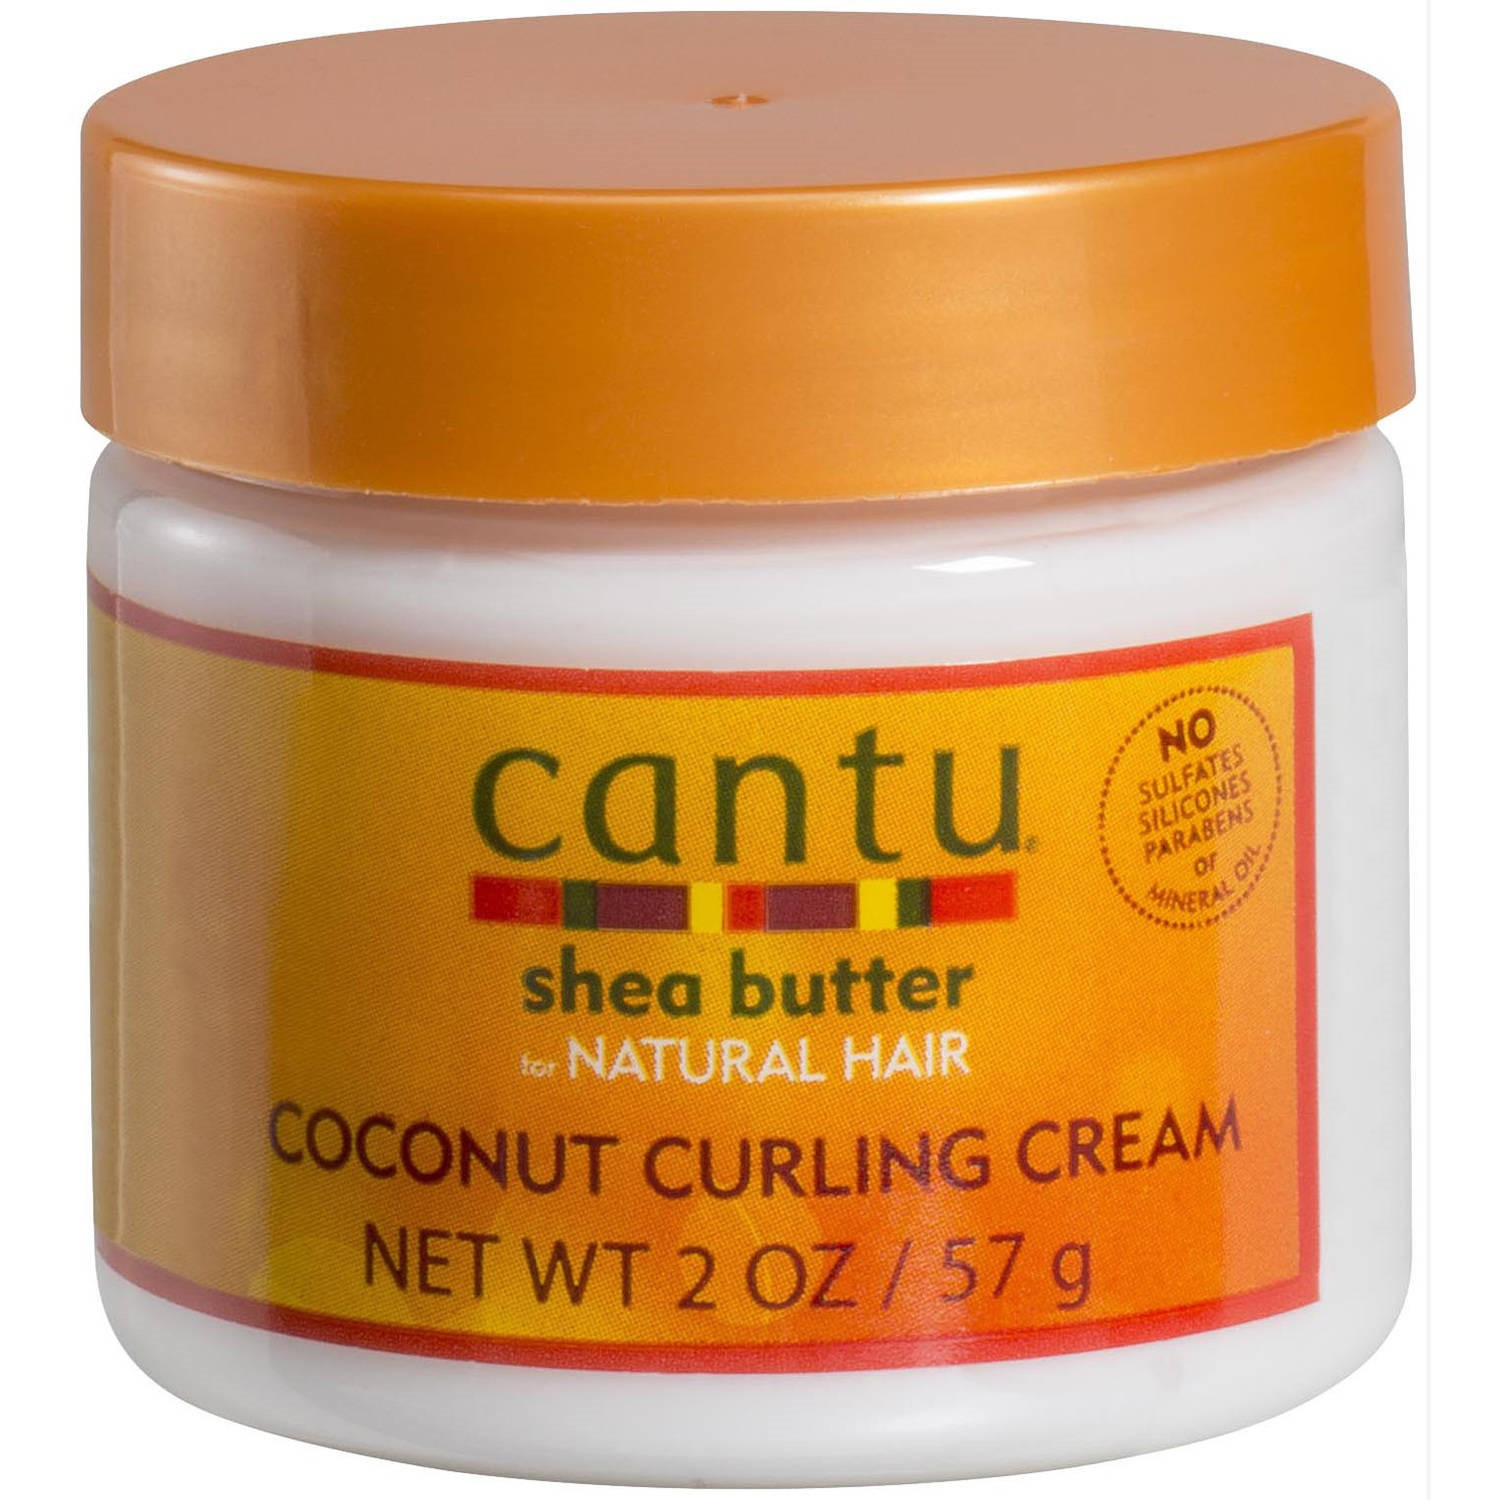 Cantu Shea Butter for Natural Hair Coconut Curling Cream, 2 oz